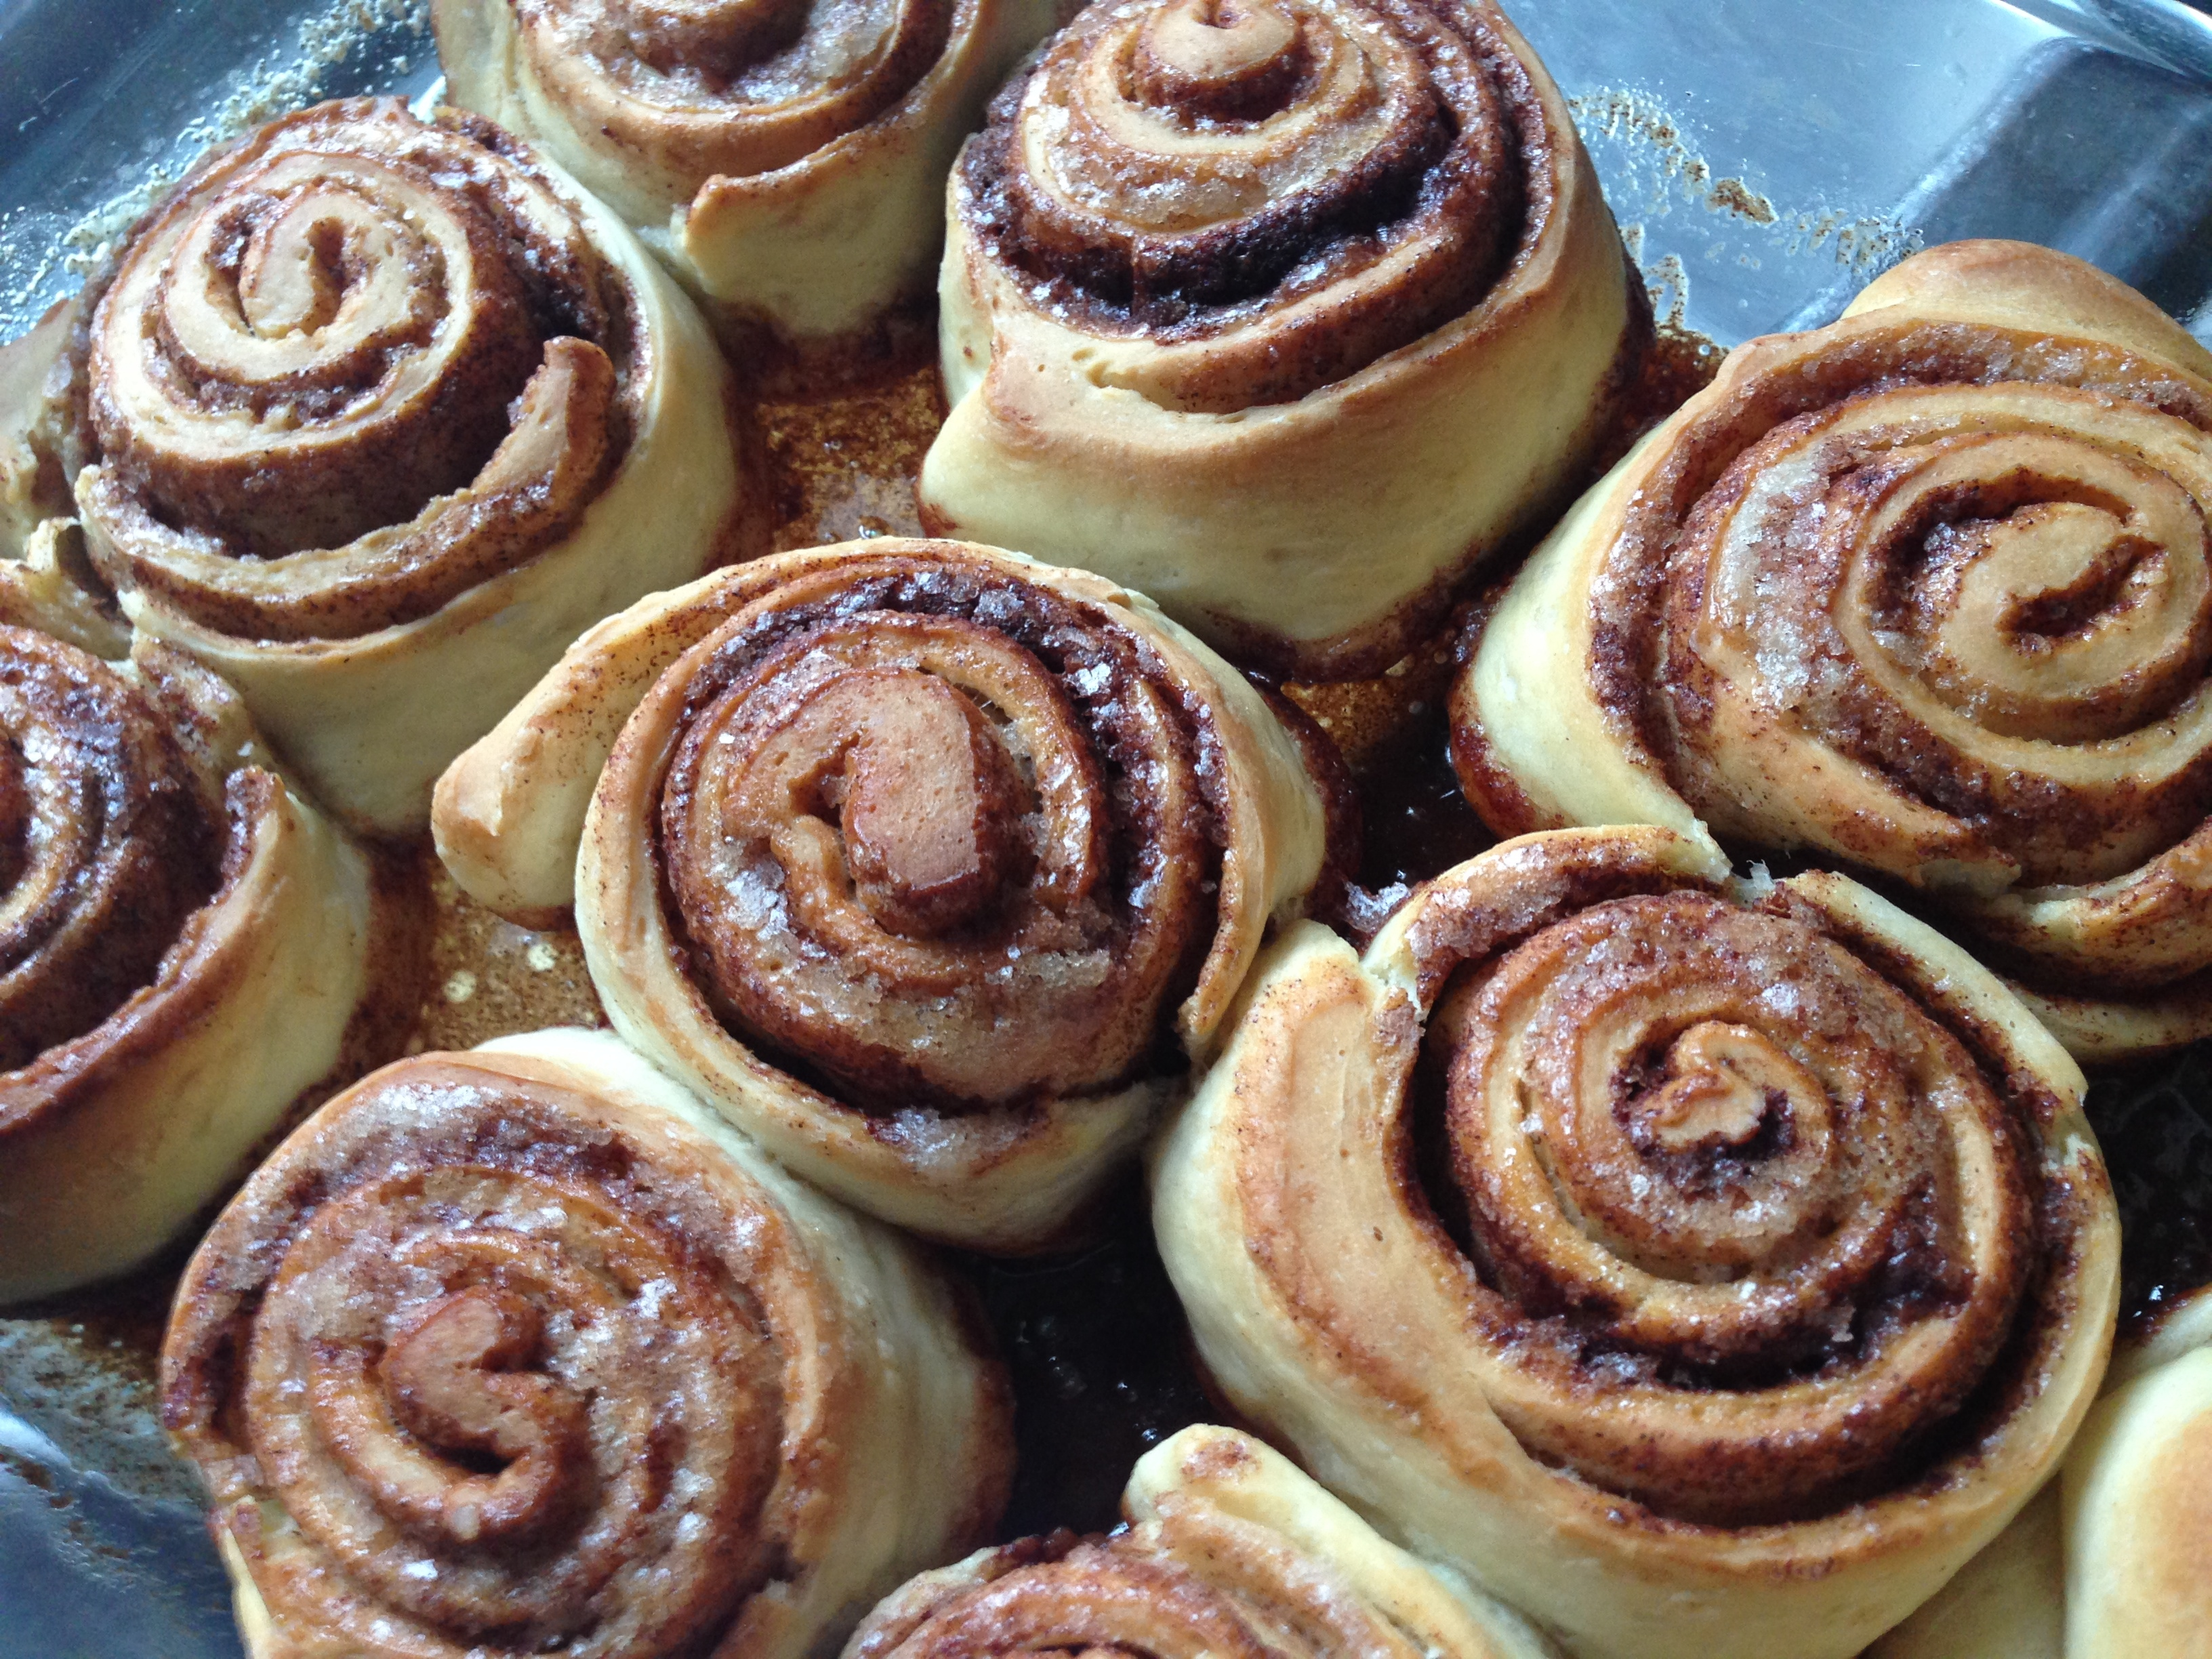 ... well, there's usually one comfort food that I turn to: cinnamon